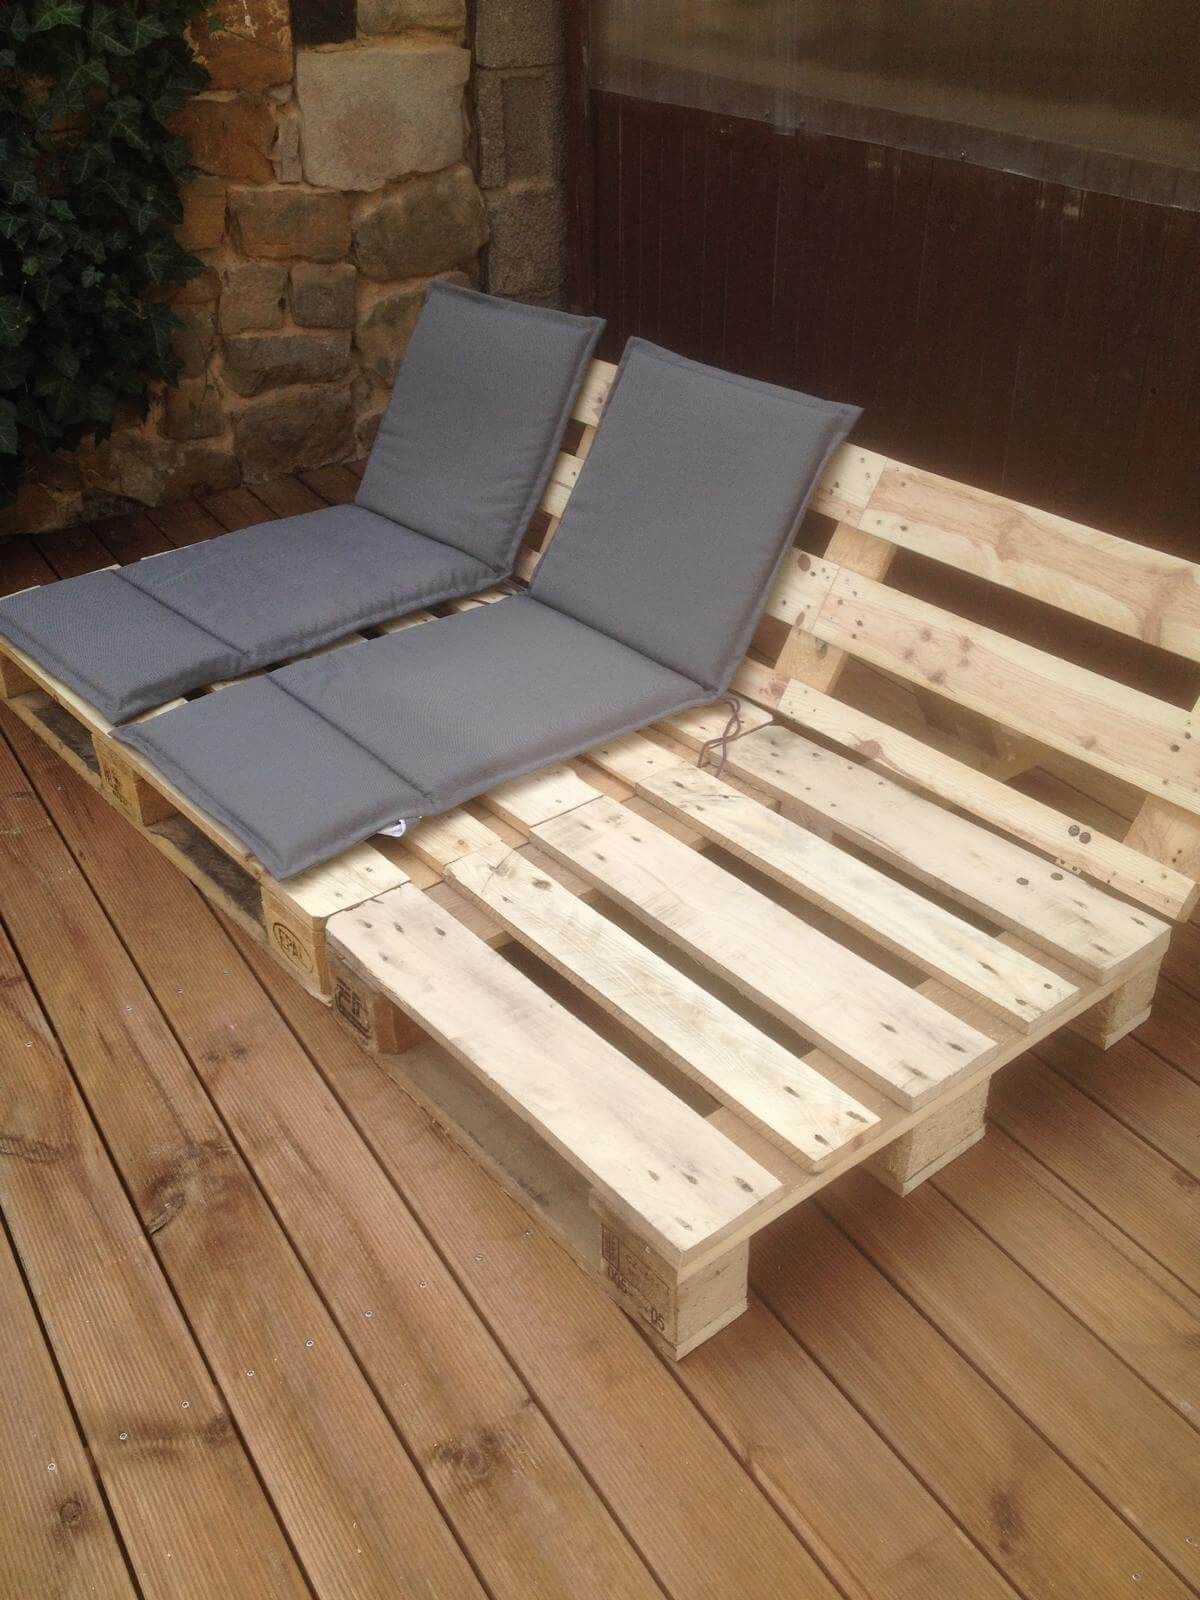 Reclining Seats for Your Patio or Deck | Palettes | Pinterest ...